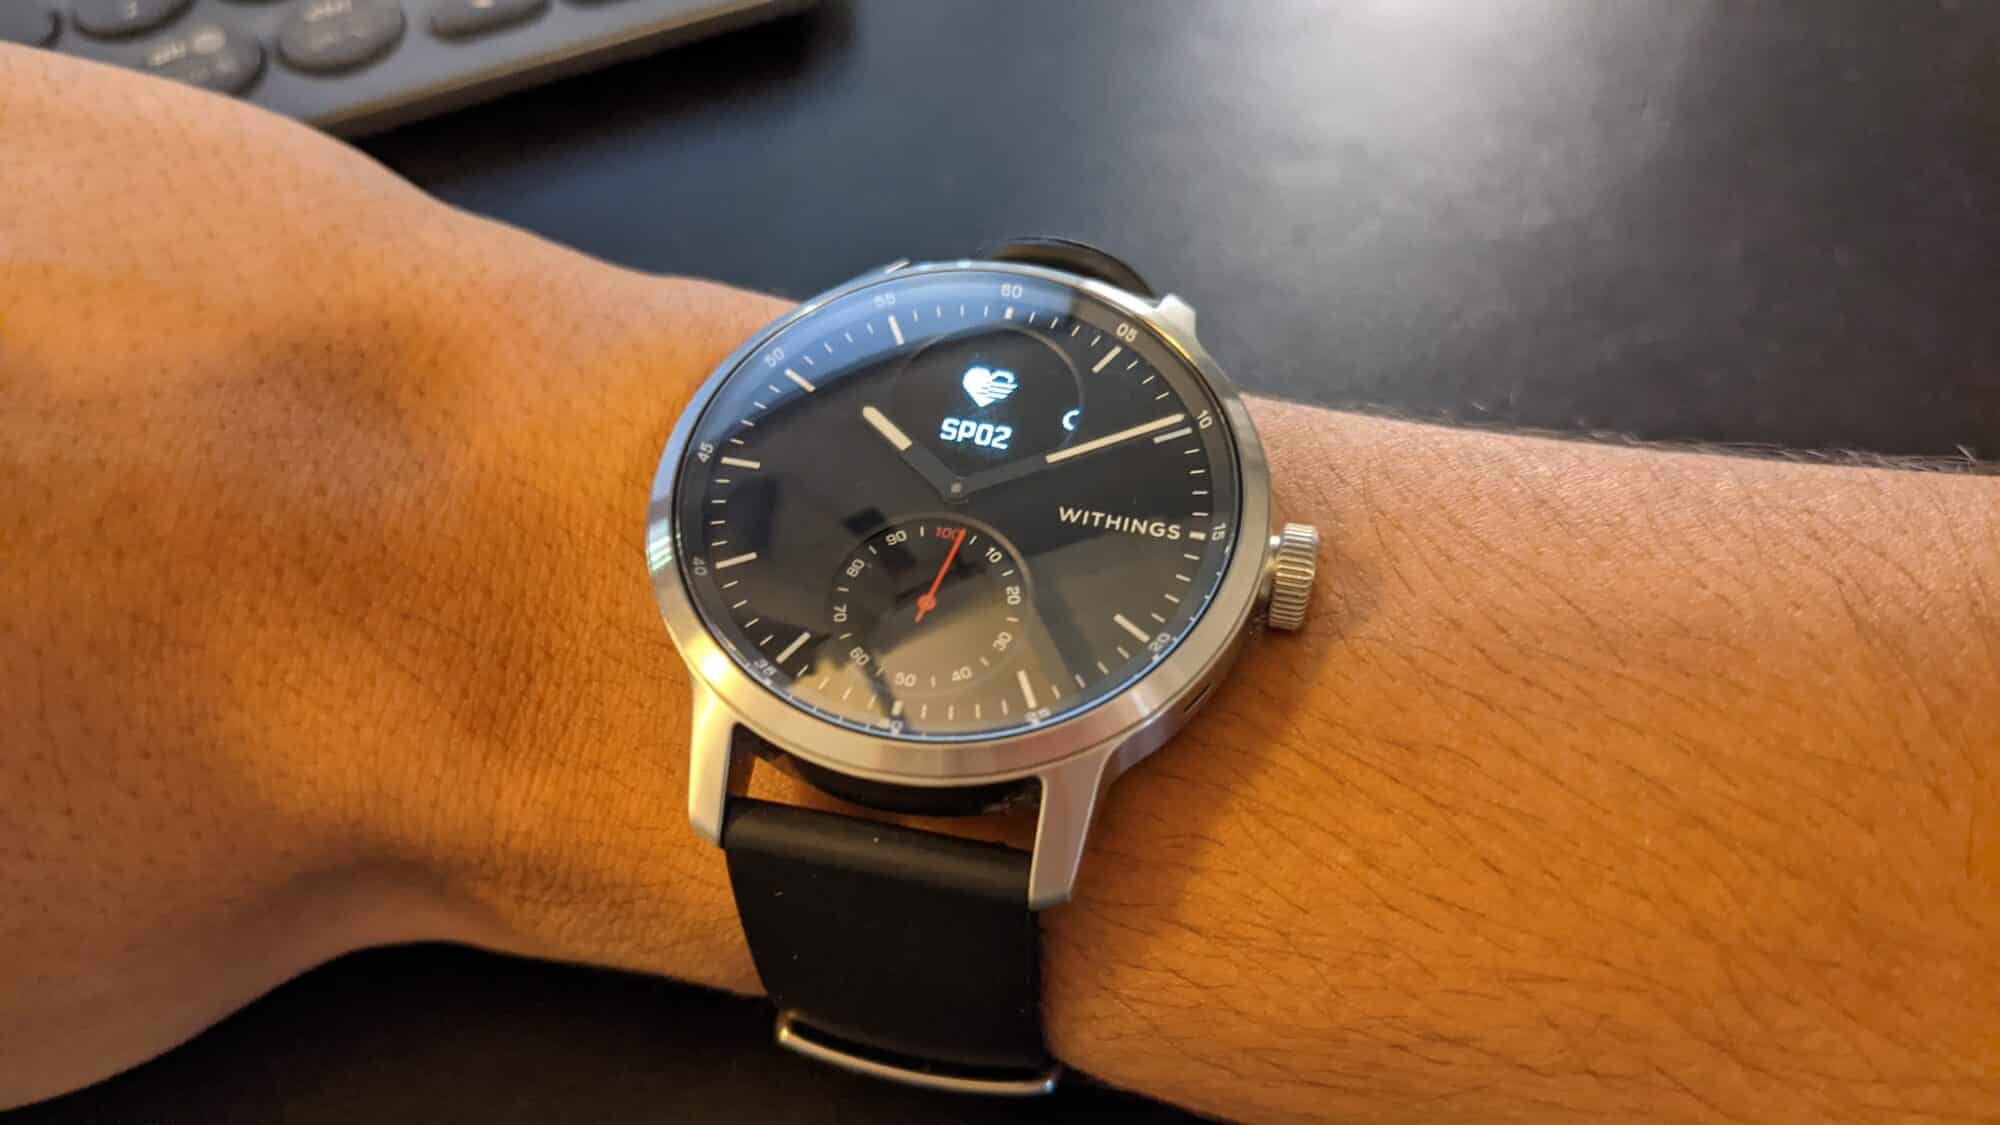 Spo2, Montre, Withings